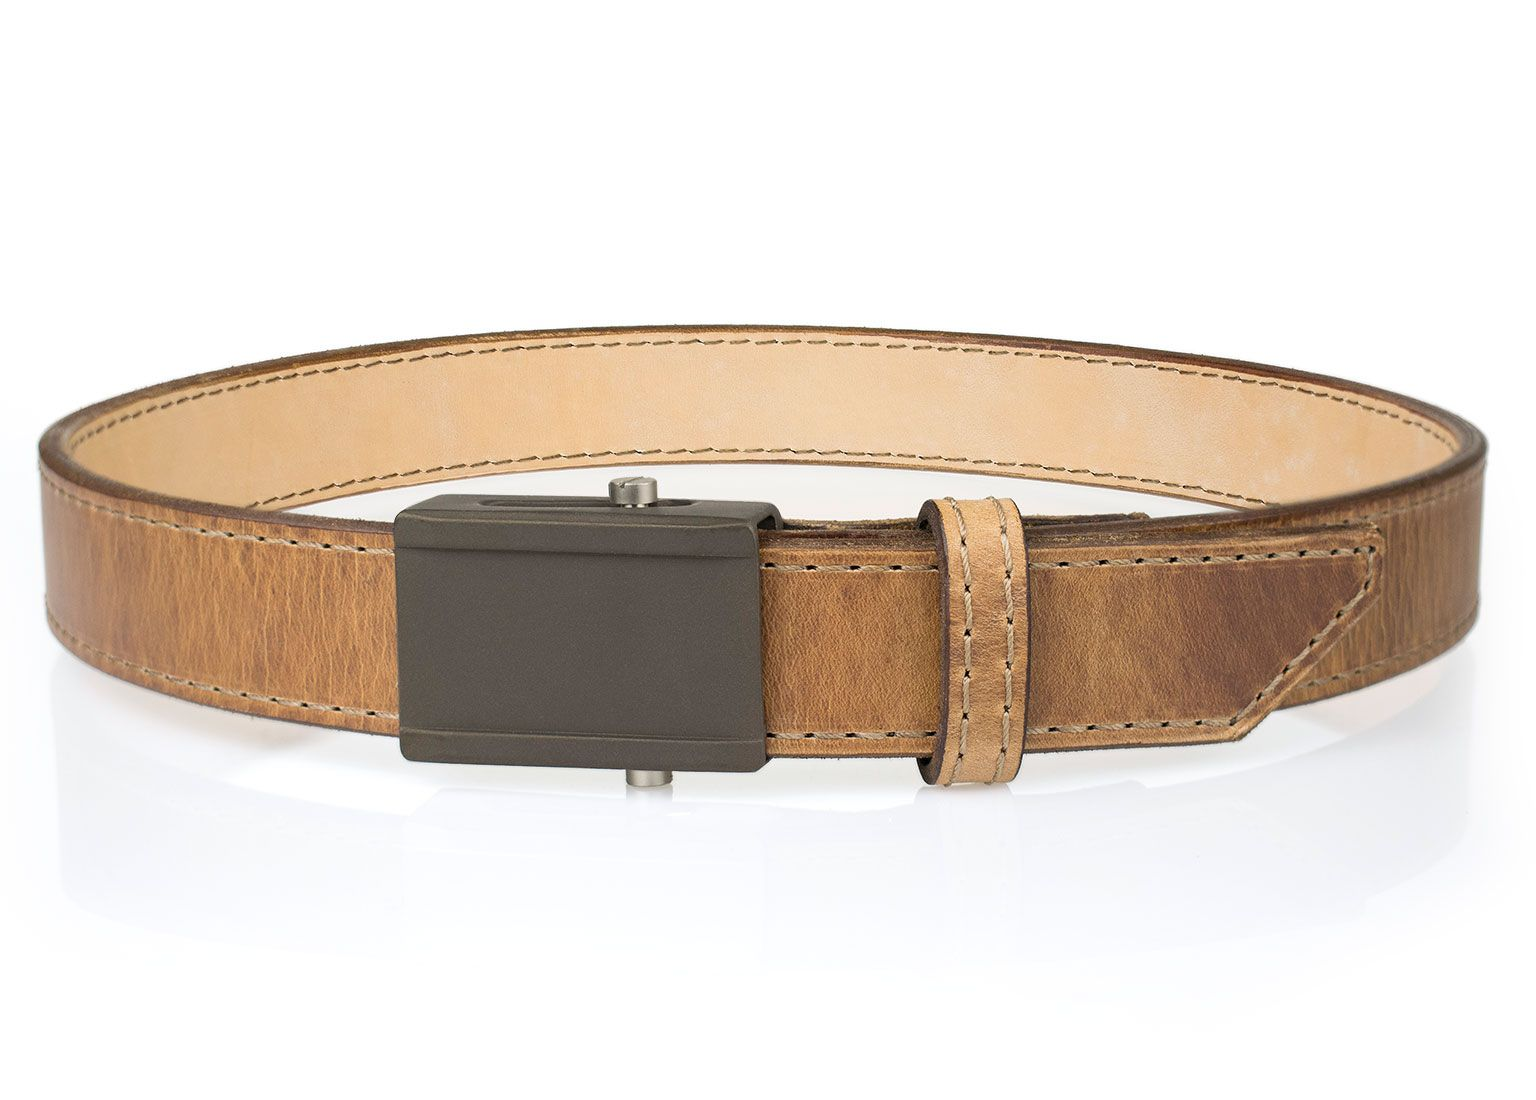 Founder's Series Crossover Belt